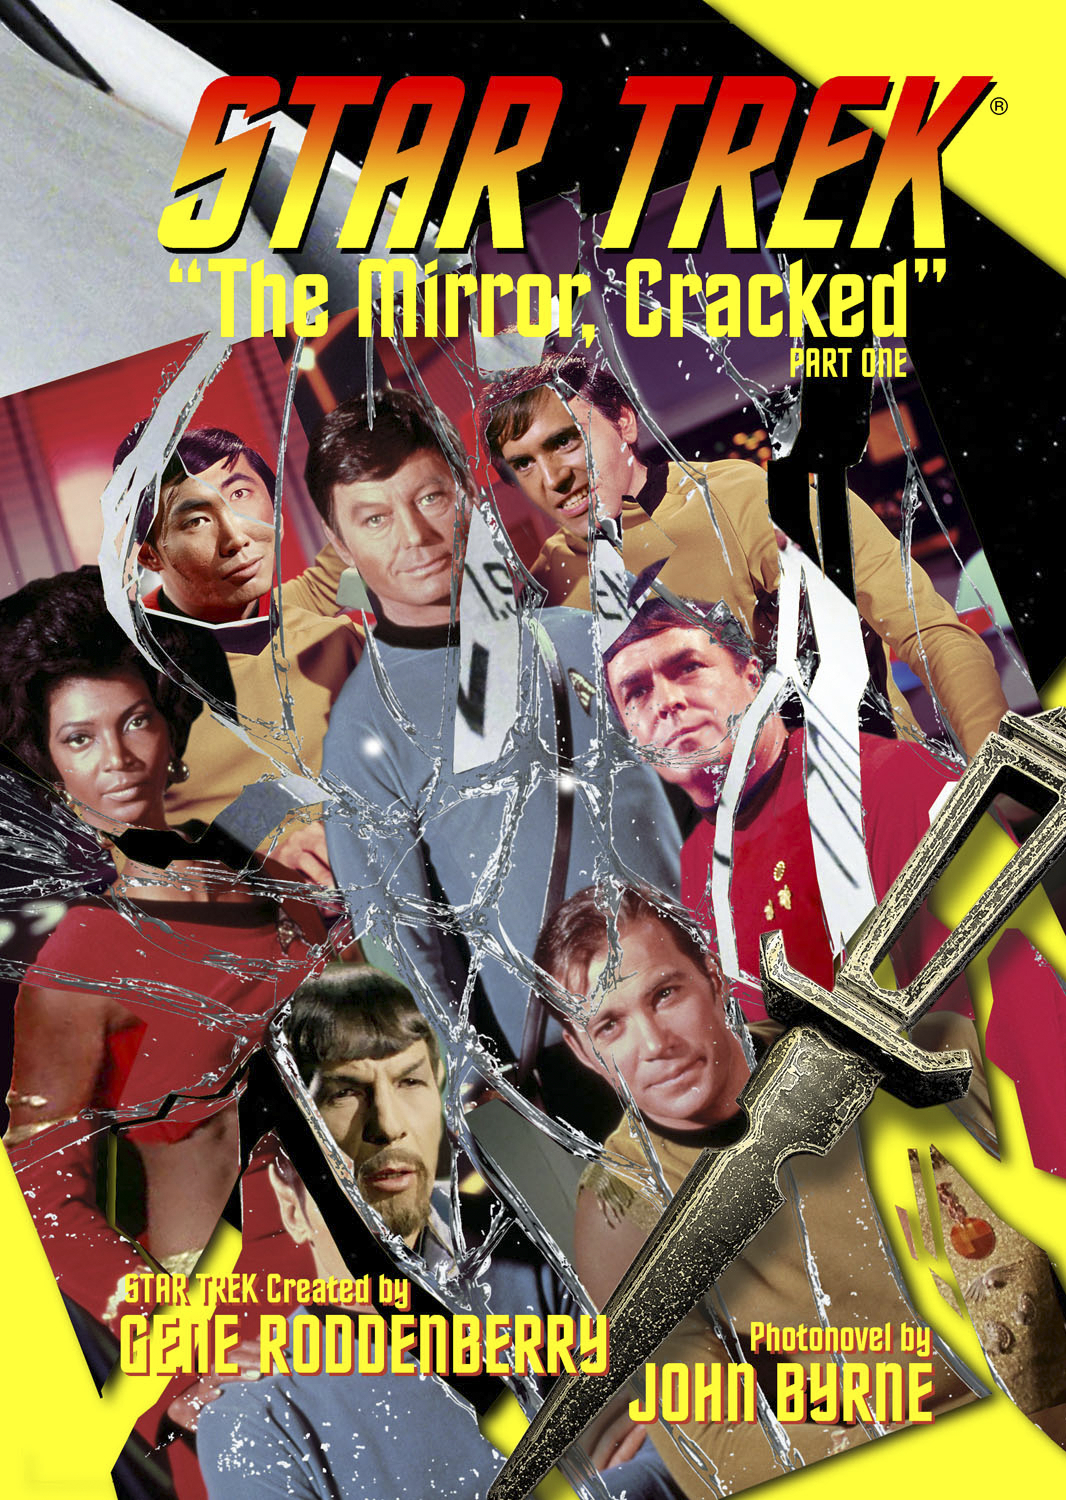 STAR TREK NEW VISIONS #1 MIRROR CRACKED